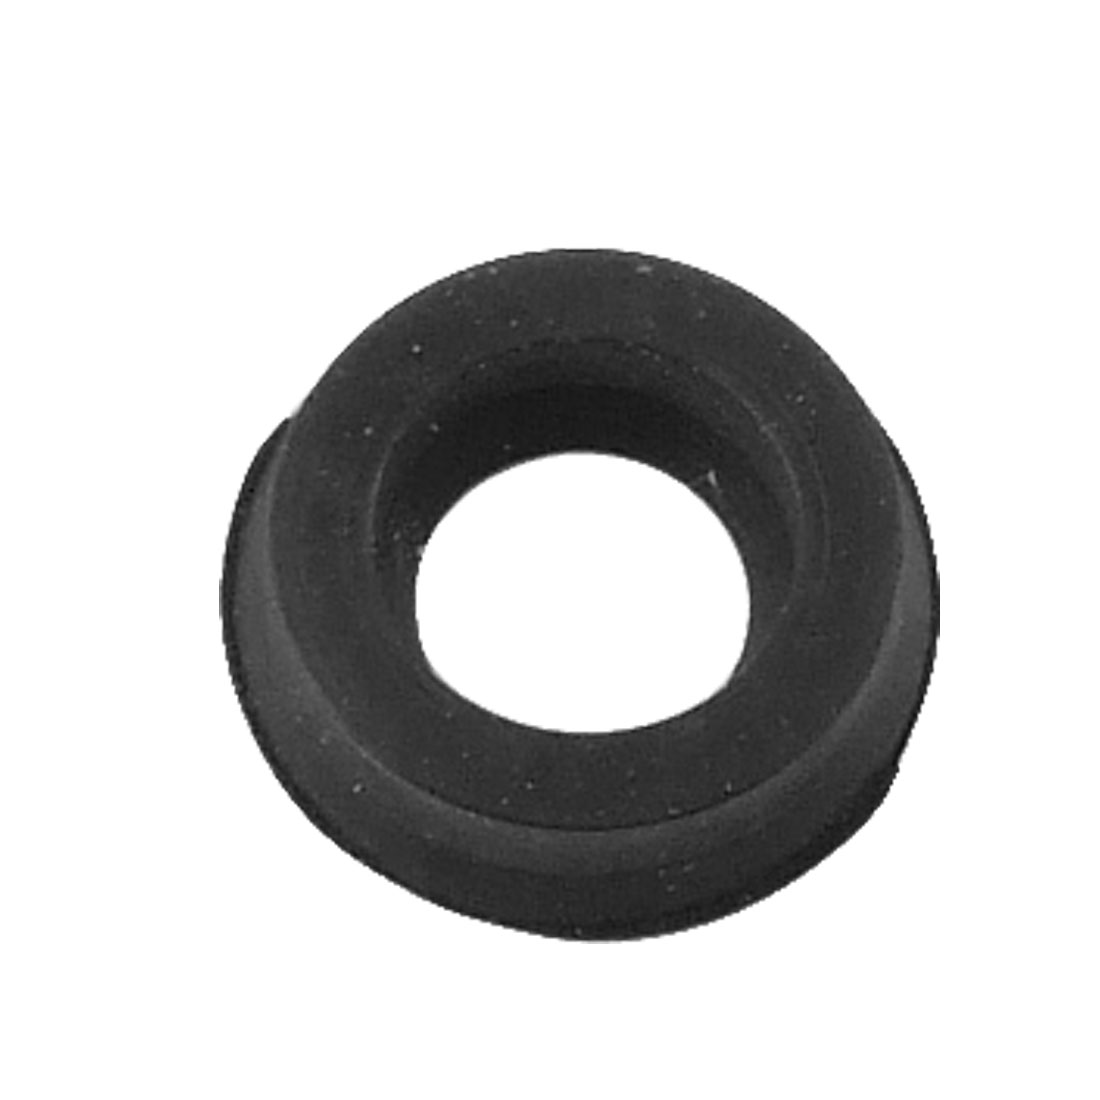 Piston Rod Shaft NBR Pneumatic Seal MYA Black 4mm x 7mm x 2.1mm